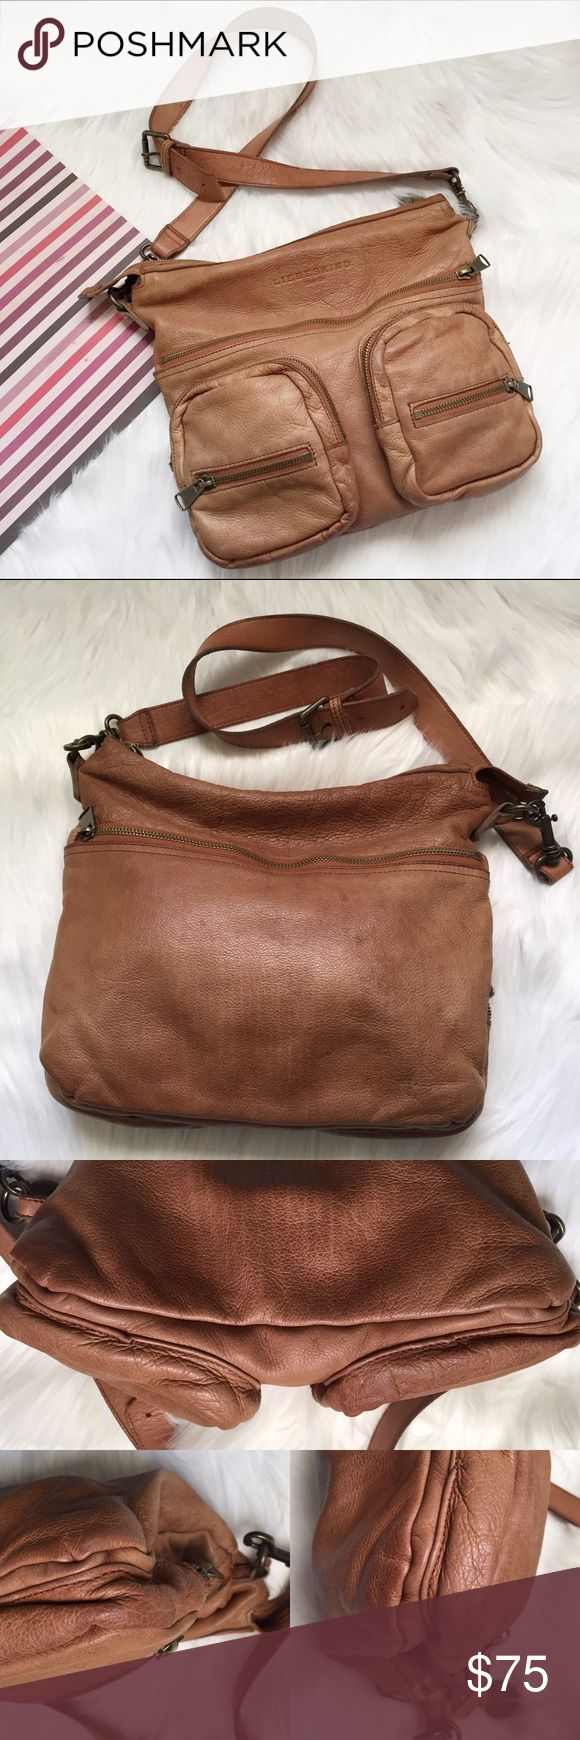 """Liebeskind Berlin Anny Leather Crossbody Bag Pre-loved, No dust bag, Women's Crossbody Bag, Soft weathered leather, with spacious interior and  multiple compartment, top zip closure, front and back exterior zip pockets, flannel lining, adjustable shoulder strap with 17""""-18"""" drop, 11.5"""" W x 11"""" H x 1.5"""" D. Light Cognac Color ( bag has uneven color ). Please feel free to ask questions. No trades. Liebeskind Bags Crossbody Bags"""